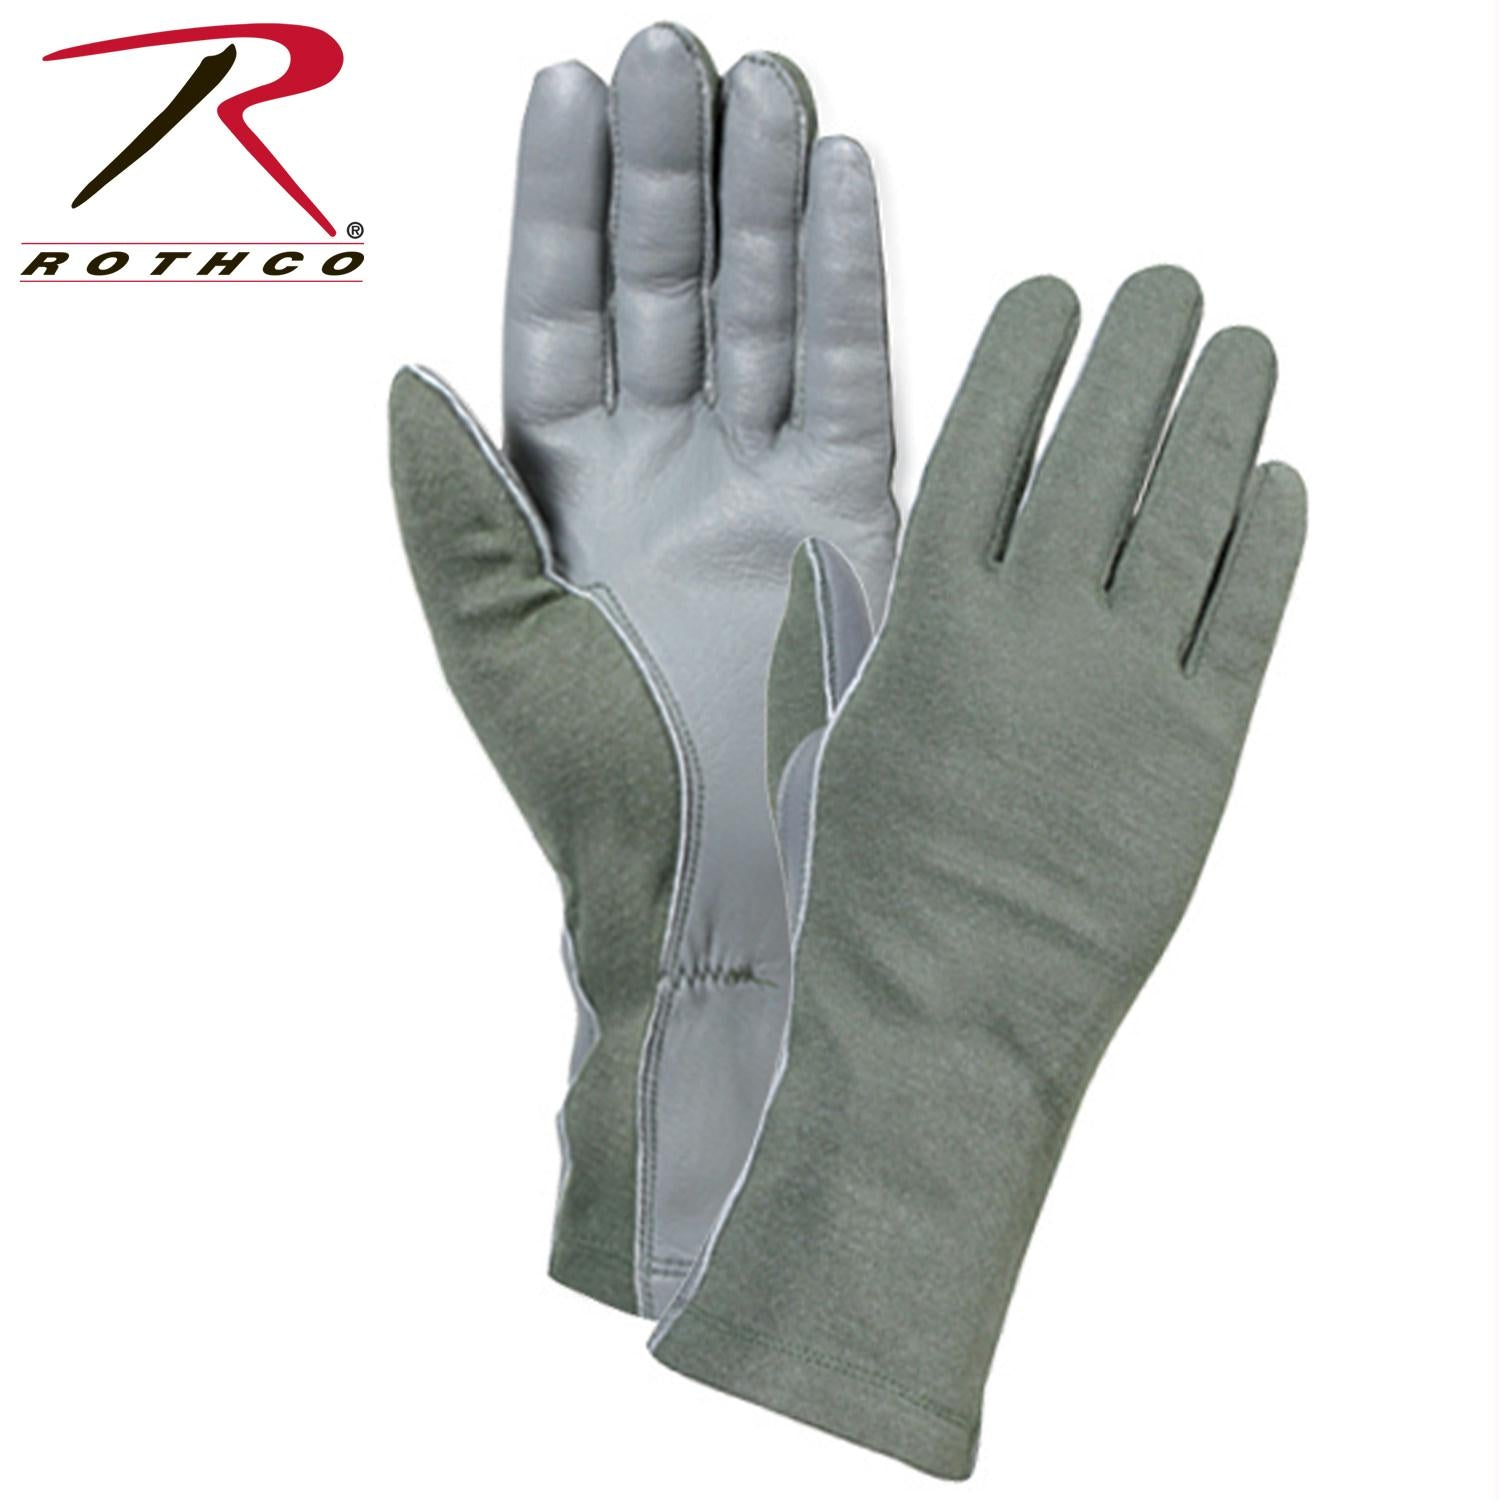 Rothco G.I. Type Flame & Heat Resistant Flight Gloves - Olive Drab / 10